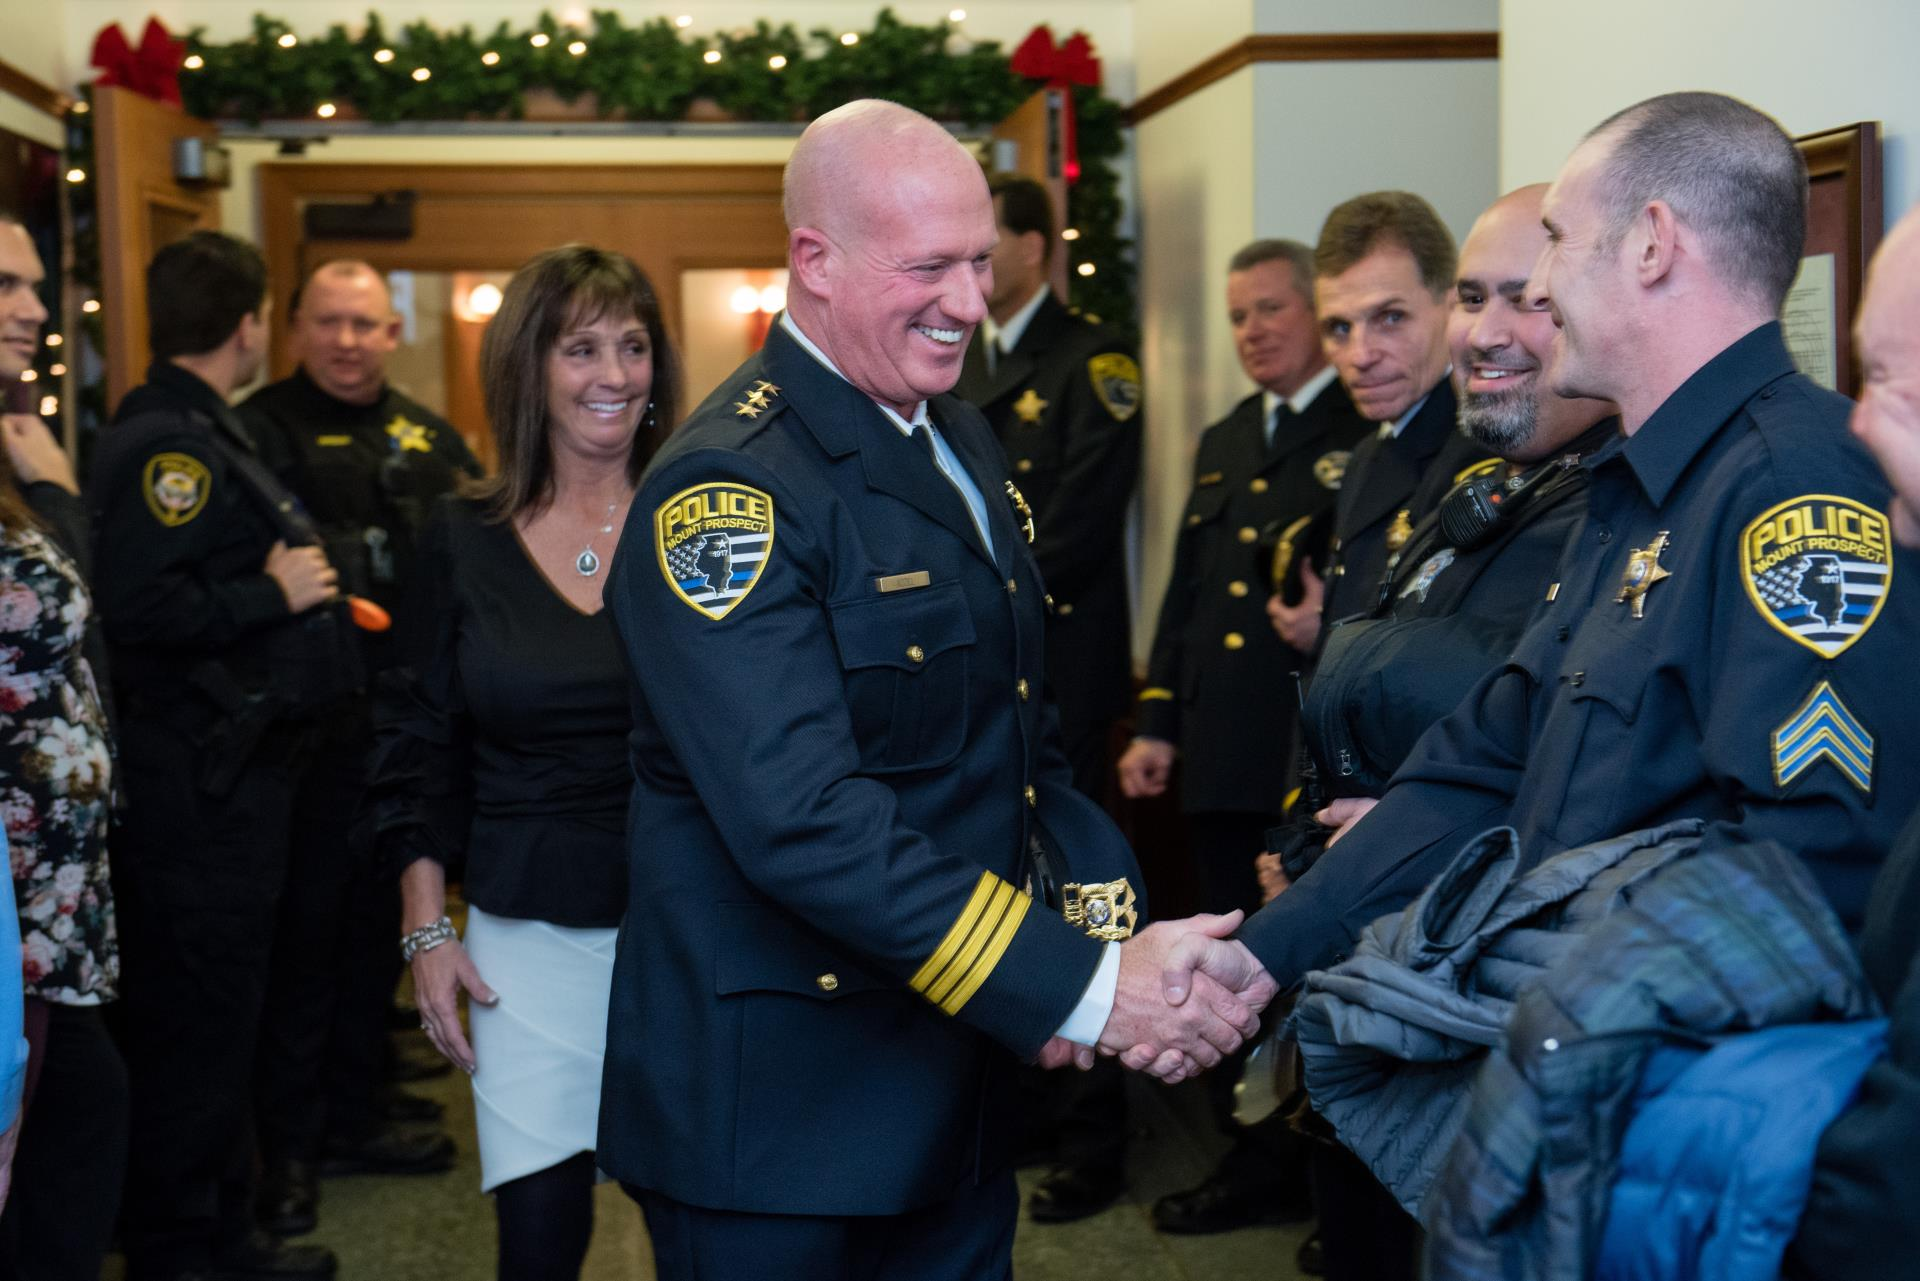 Chief Koziol Swearing-In Ceremony Final-4266